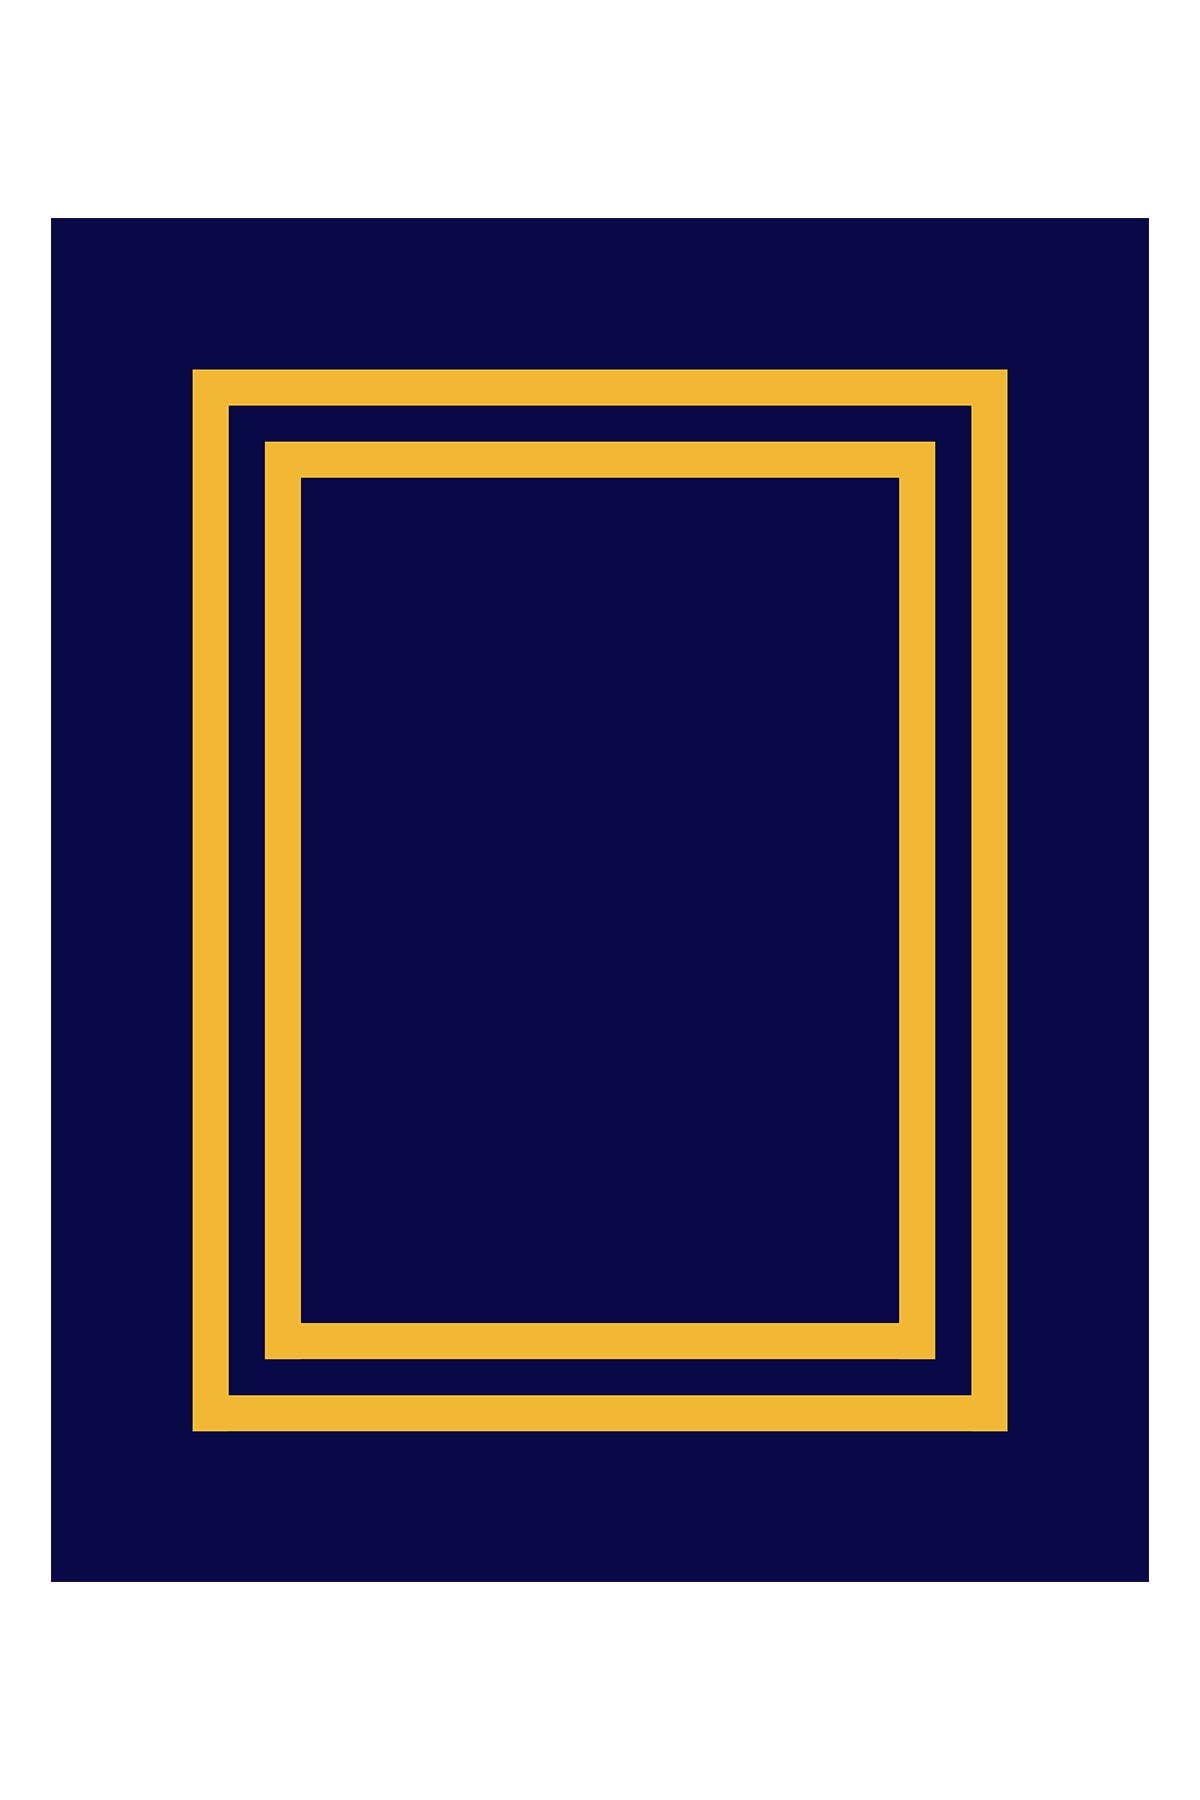 Image of Apollo Towels Beach Blanket - Navy/Gold